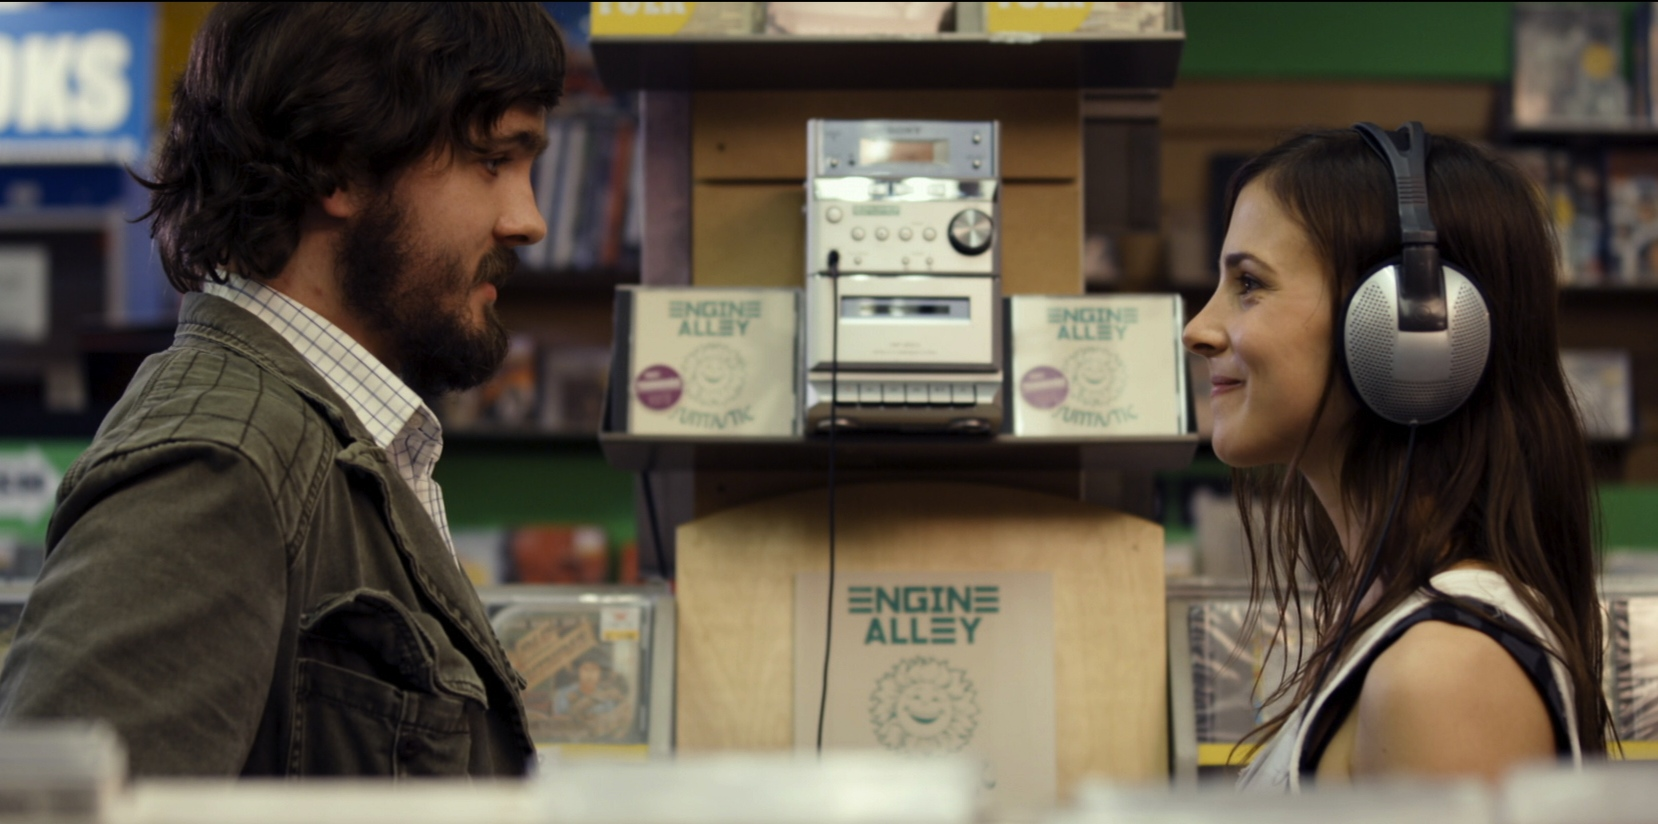 What happens when two people spend a day together, and they don't understand a single word the other person is saying? Quite a lot actually in this charming little short film. 'RHINOS' is the story of Ingrid and Thomas, thrown together by circumstance who over the course of six eventful hours learn more about each other than they thought possible.